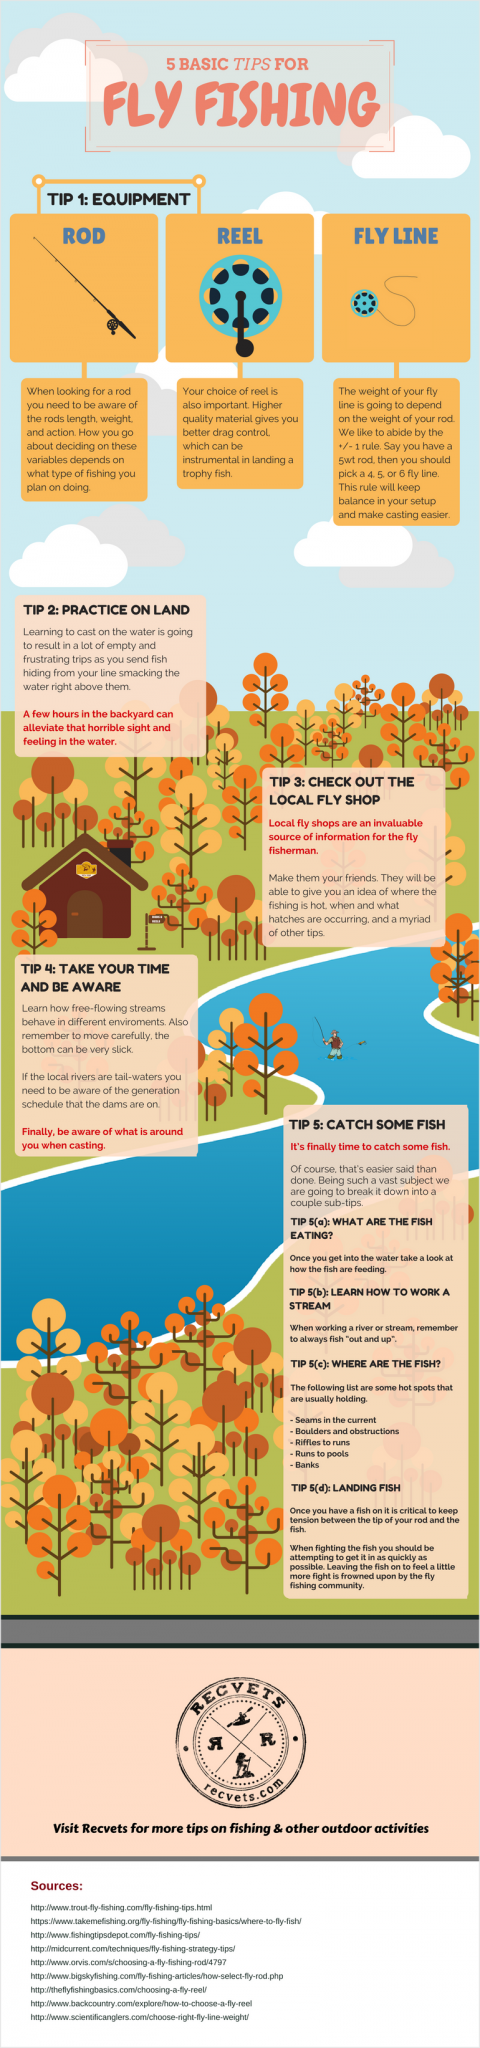 Fly fishing infographic for beginners from RecVets